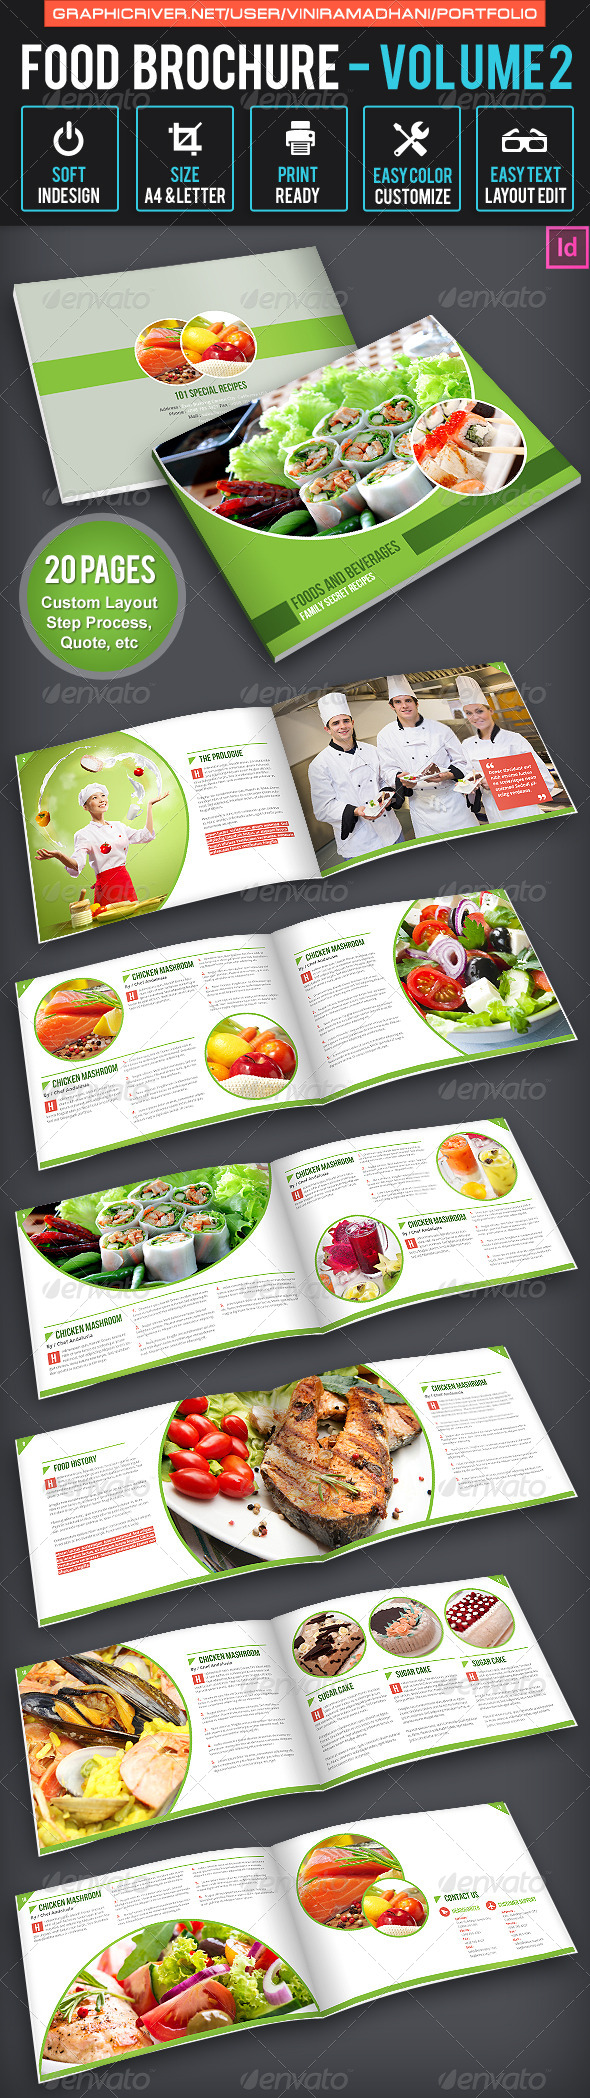 GraphicRiver Food Brochure Volume 2 6525263